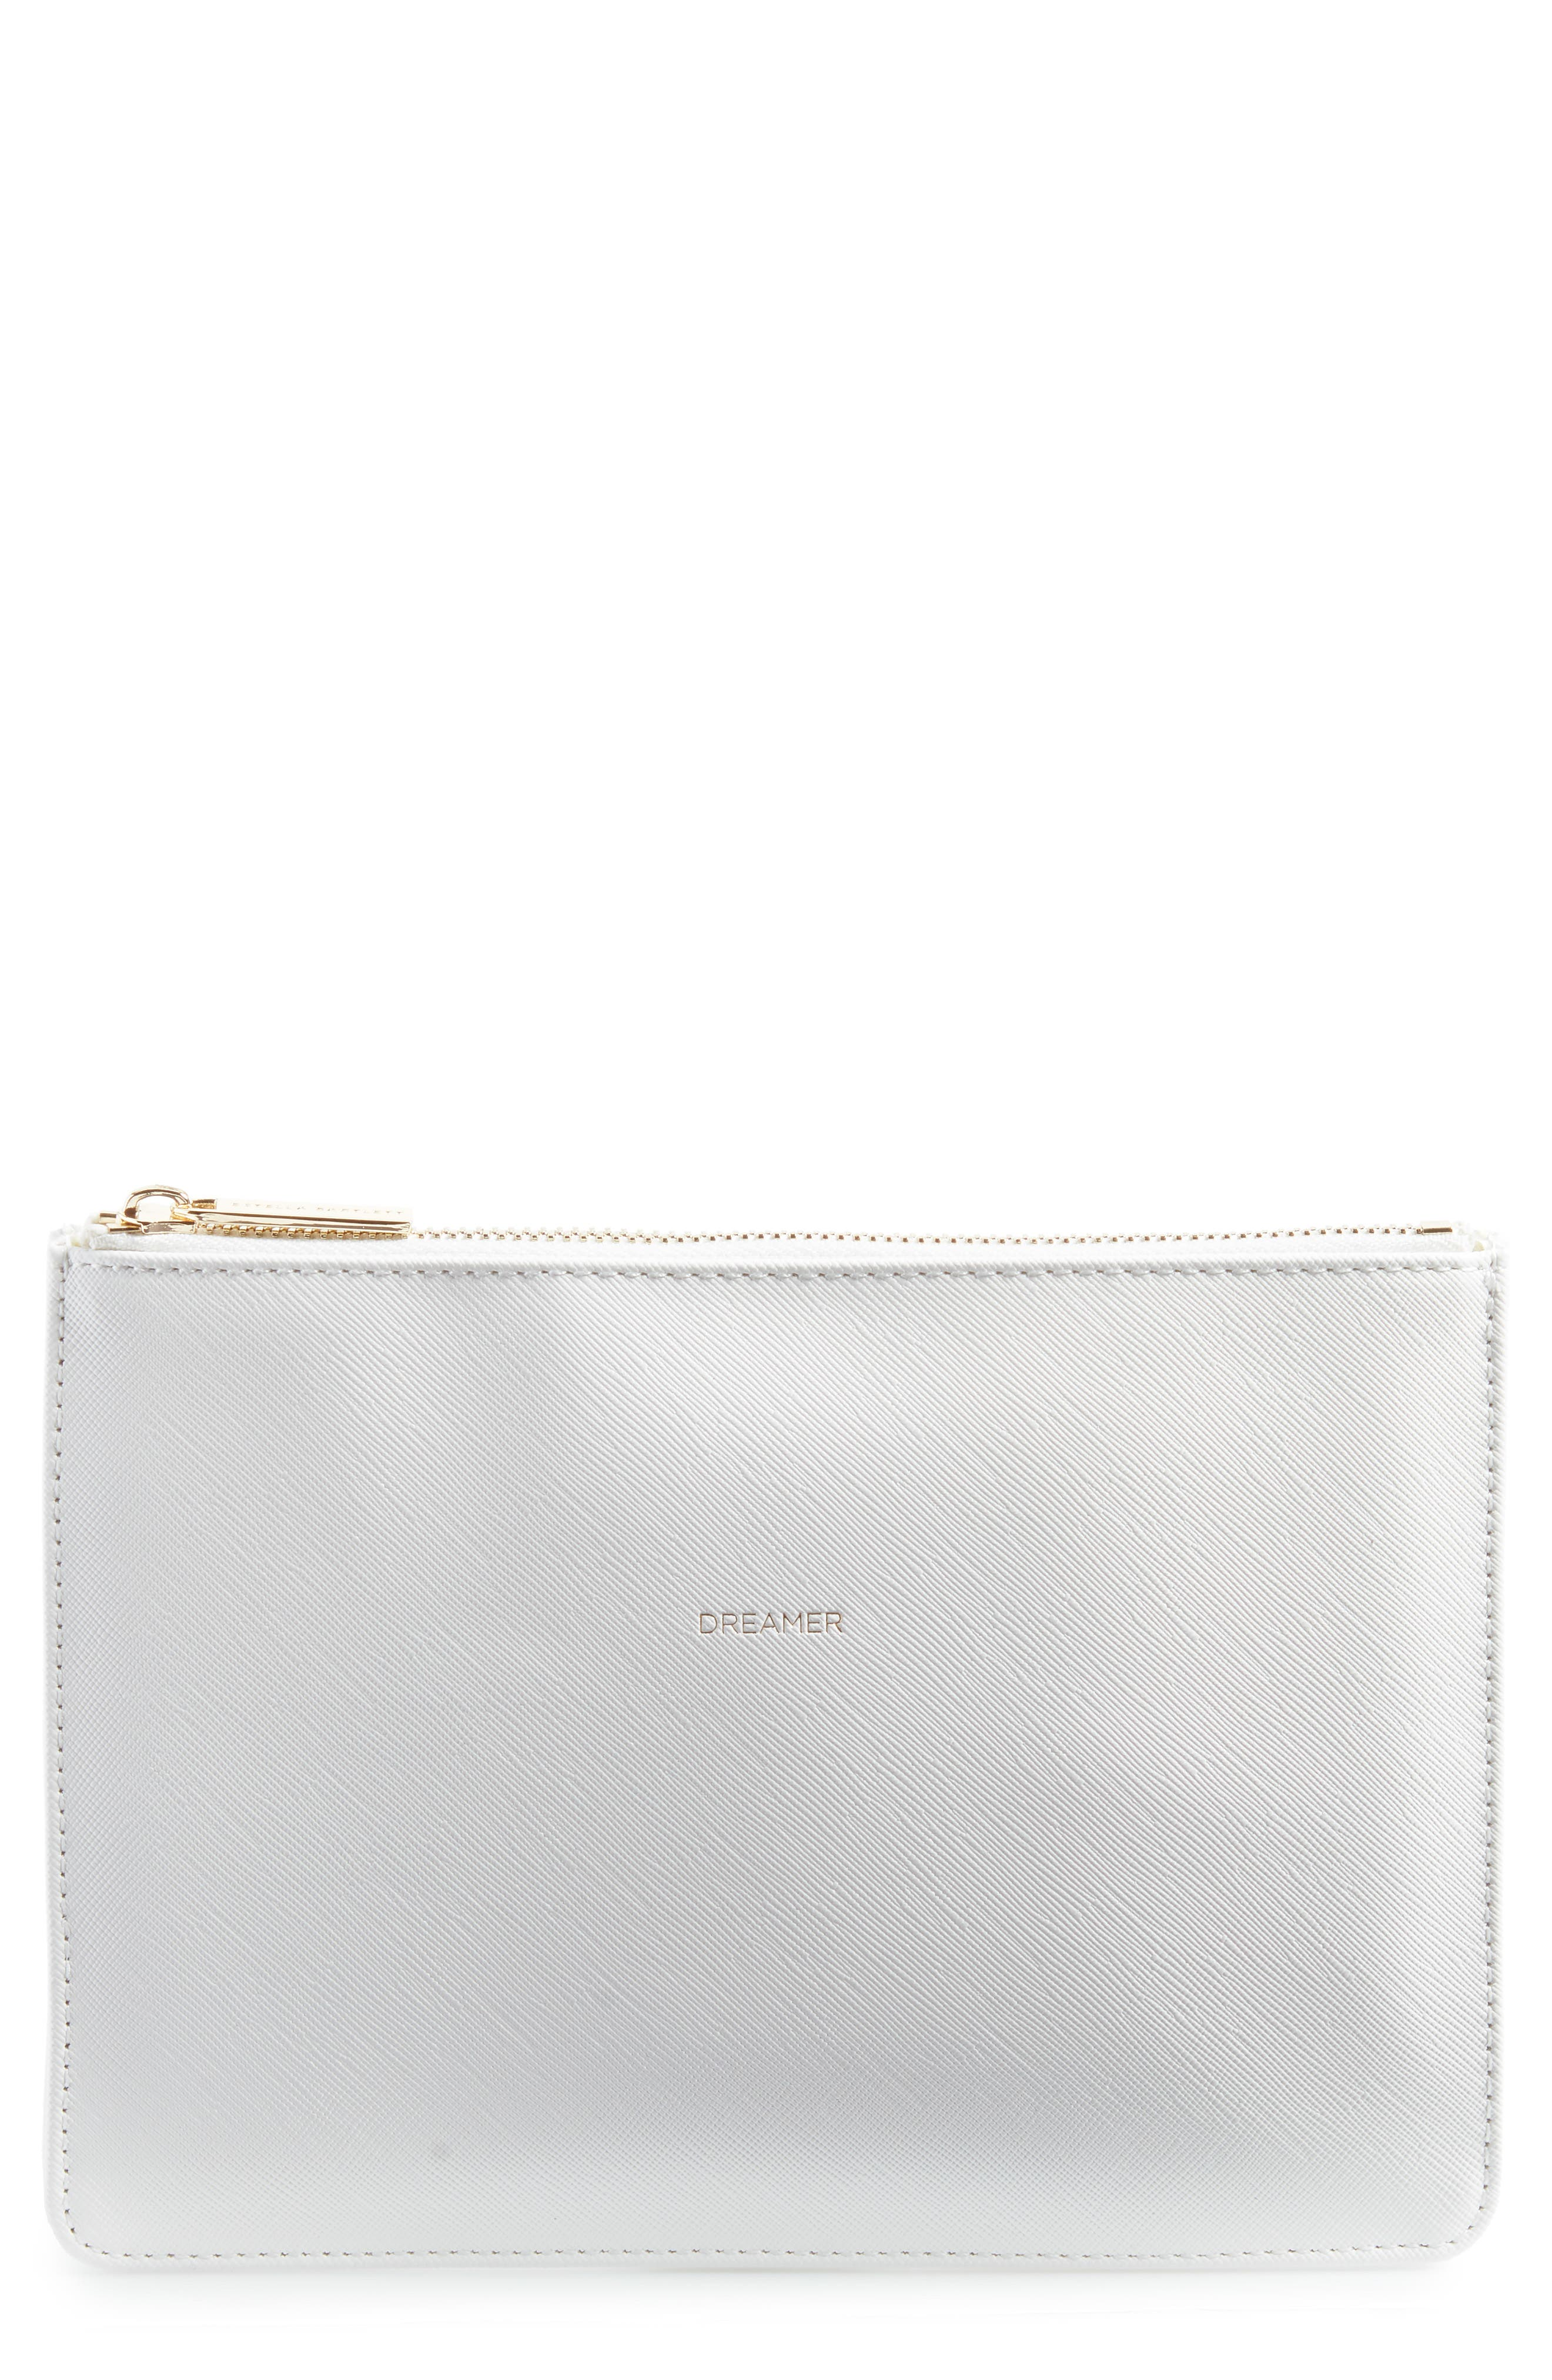 Live As You Dream Medium Faux Leather Pouch,                             Main thumbnail 1, color,                             Ivory